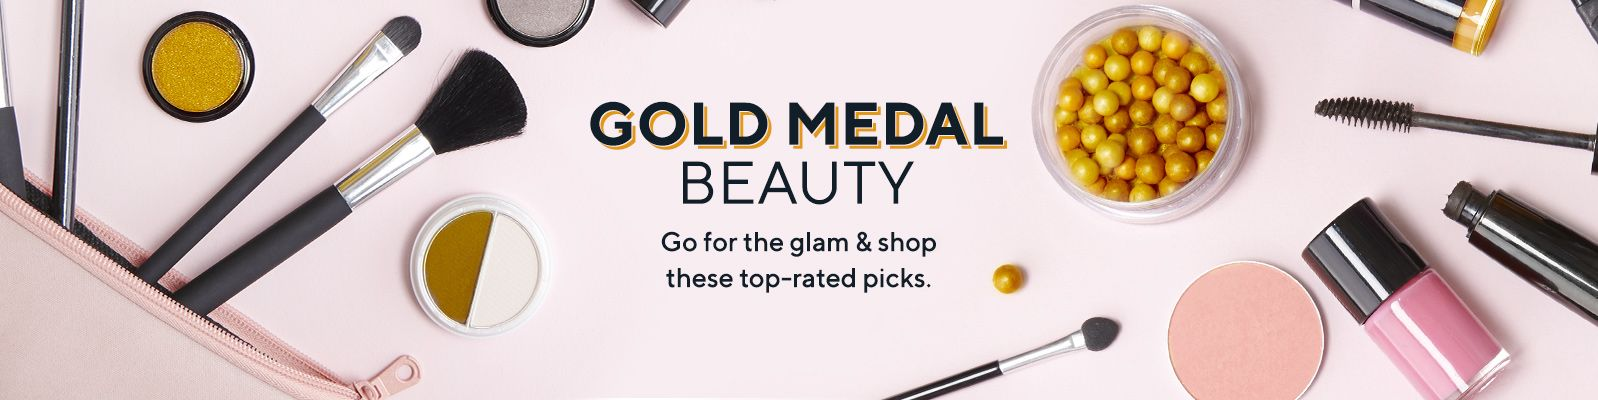 Gold Medal Beauty Go for the glam & shop these top-rated picks.